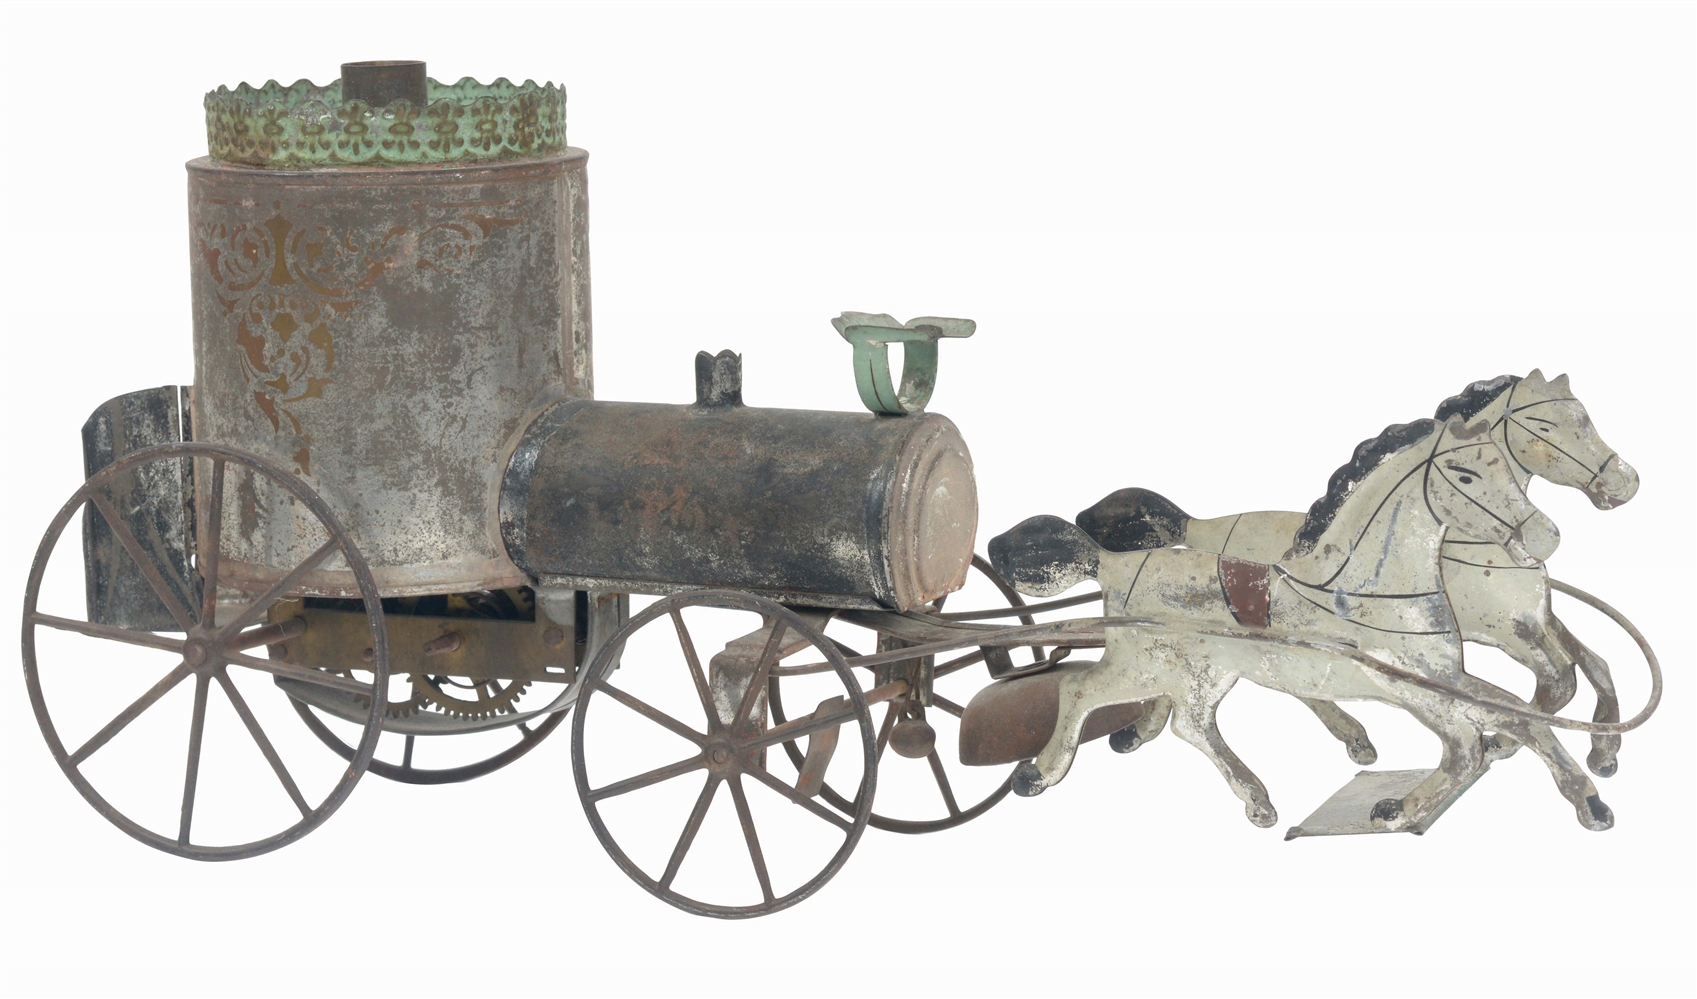 ATTRIBUTED TO ALTHOF BERGMAN VERY EARLY TIN CLOCKWORK HORSE DRAWN PUMPER.